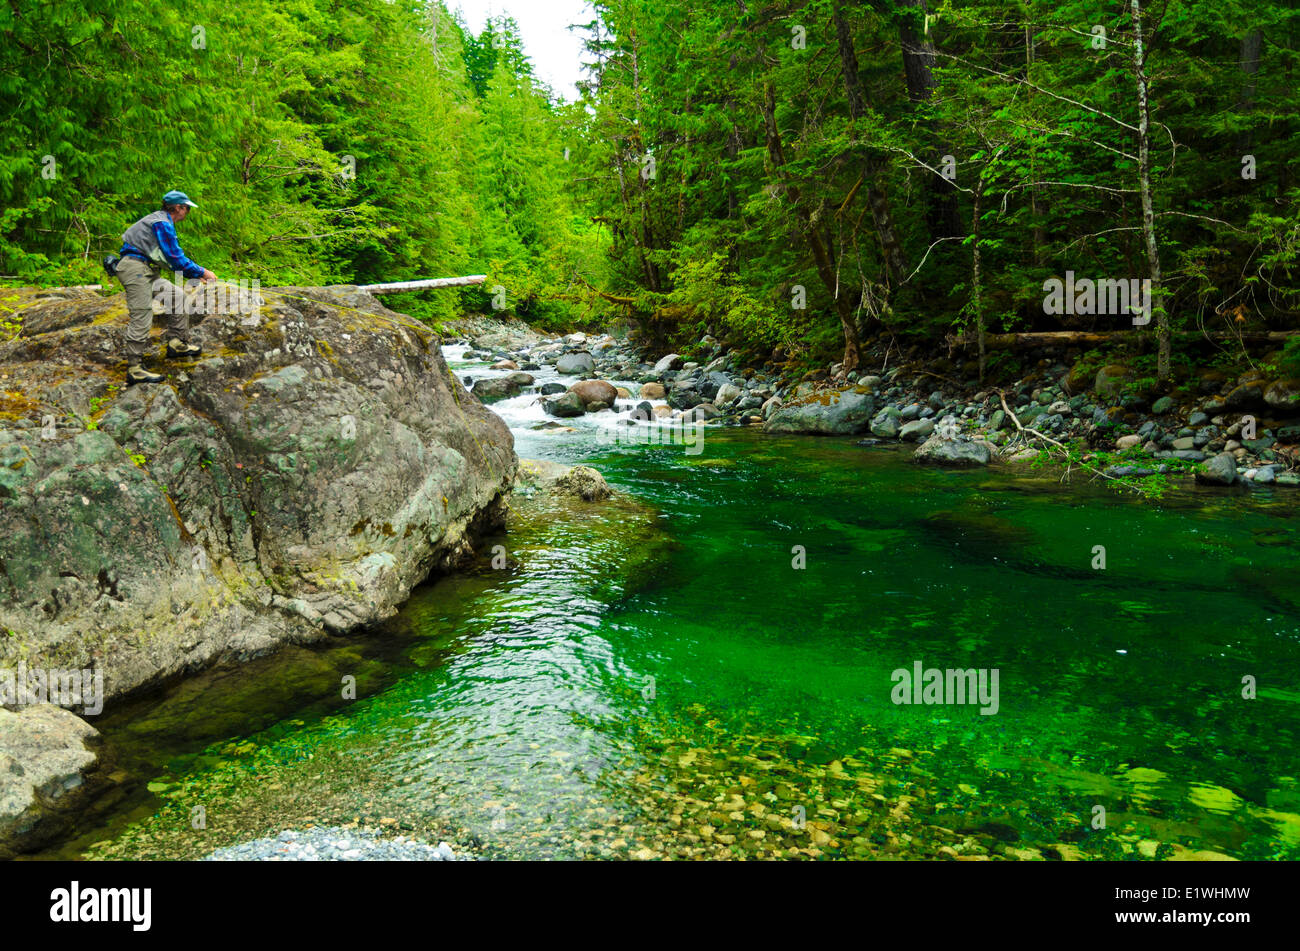 Man fly fishing vancouver island stamp river british for Vancouver island fishing